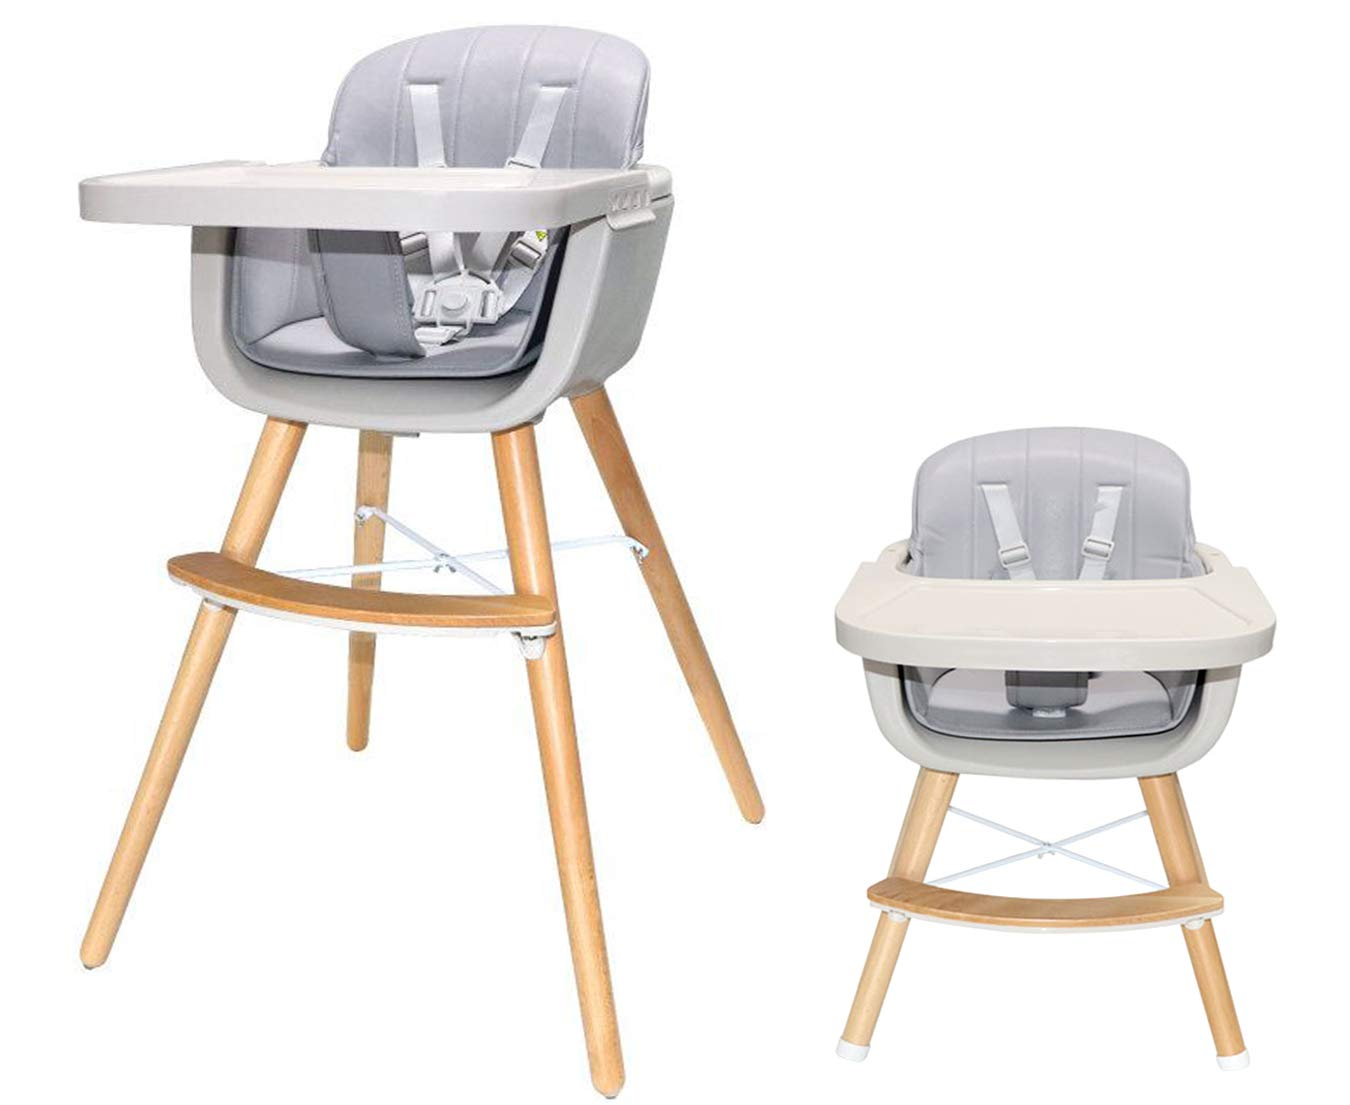 Amazon Com Asunflower Wooden High Chair 3 In 1 Convertible Modern Highchair Solution With Cushion Adjustable Highchair For Babies And Toddlers Baby